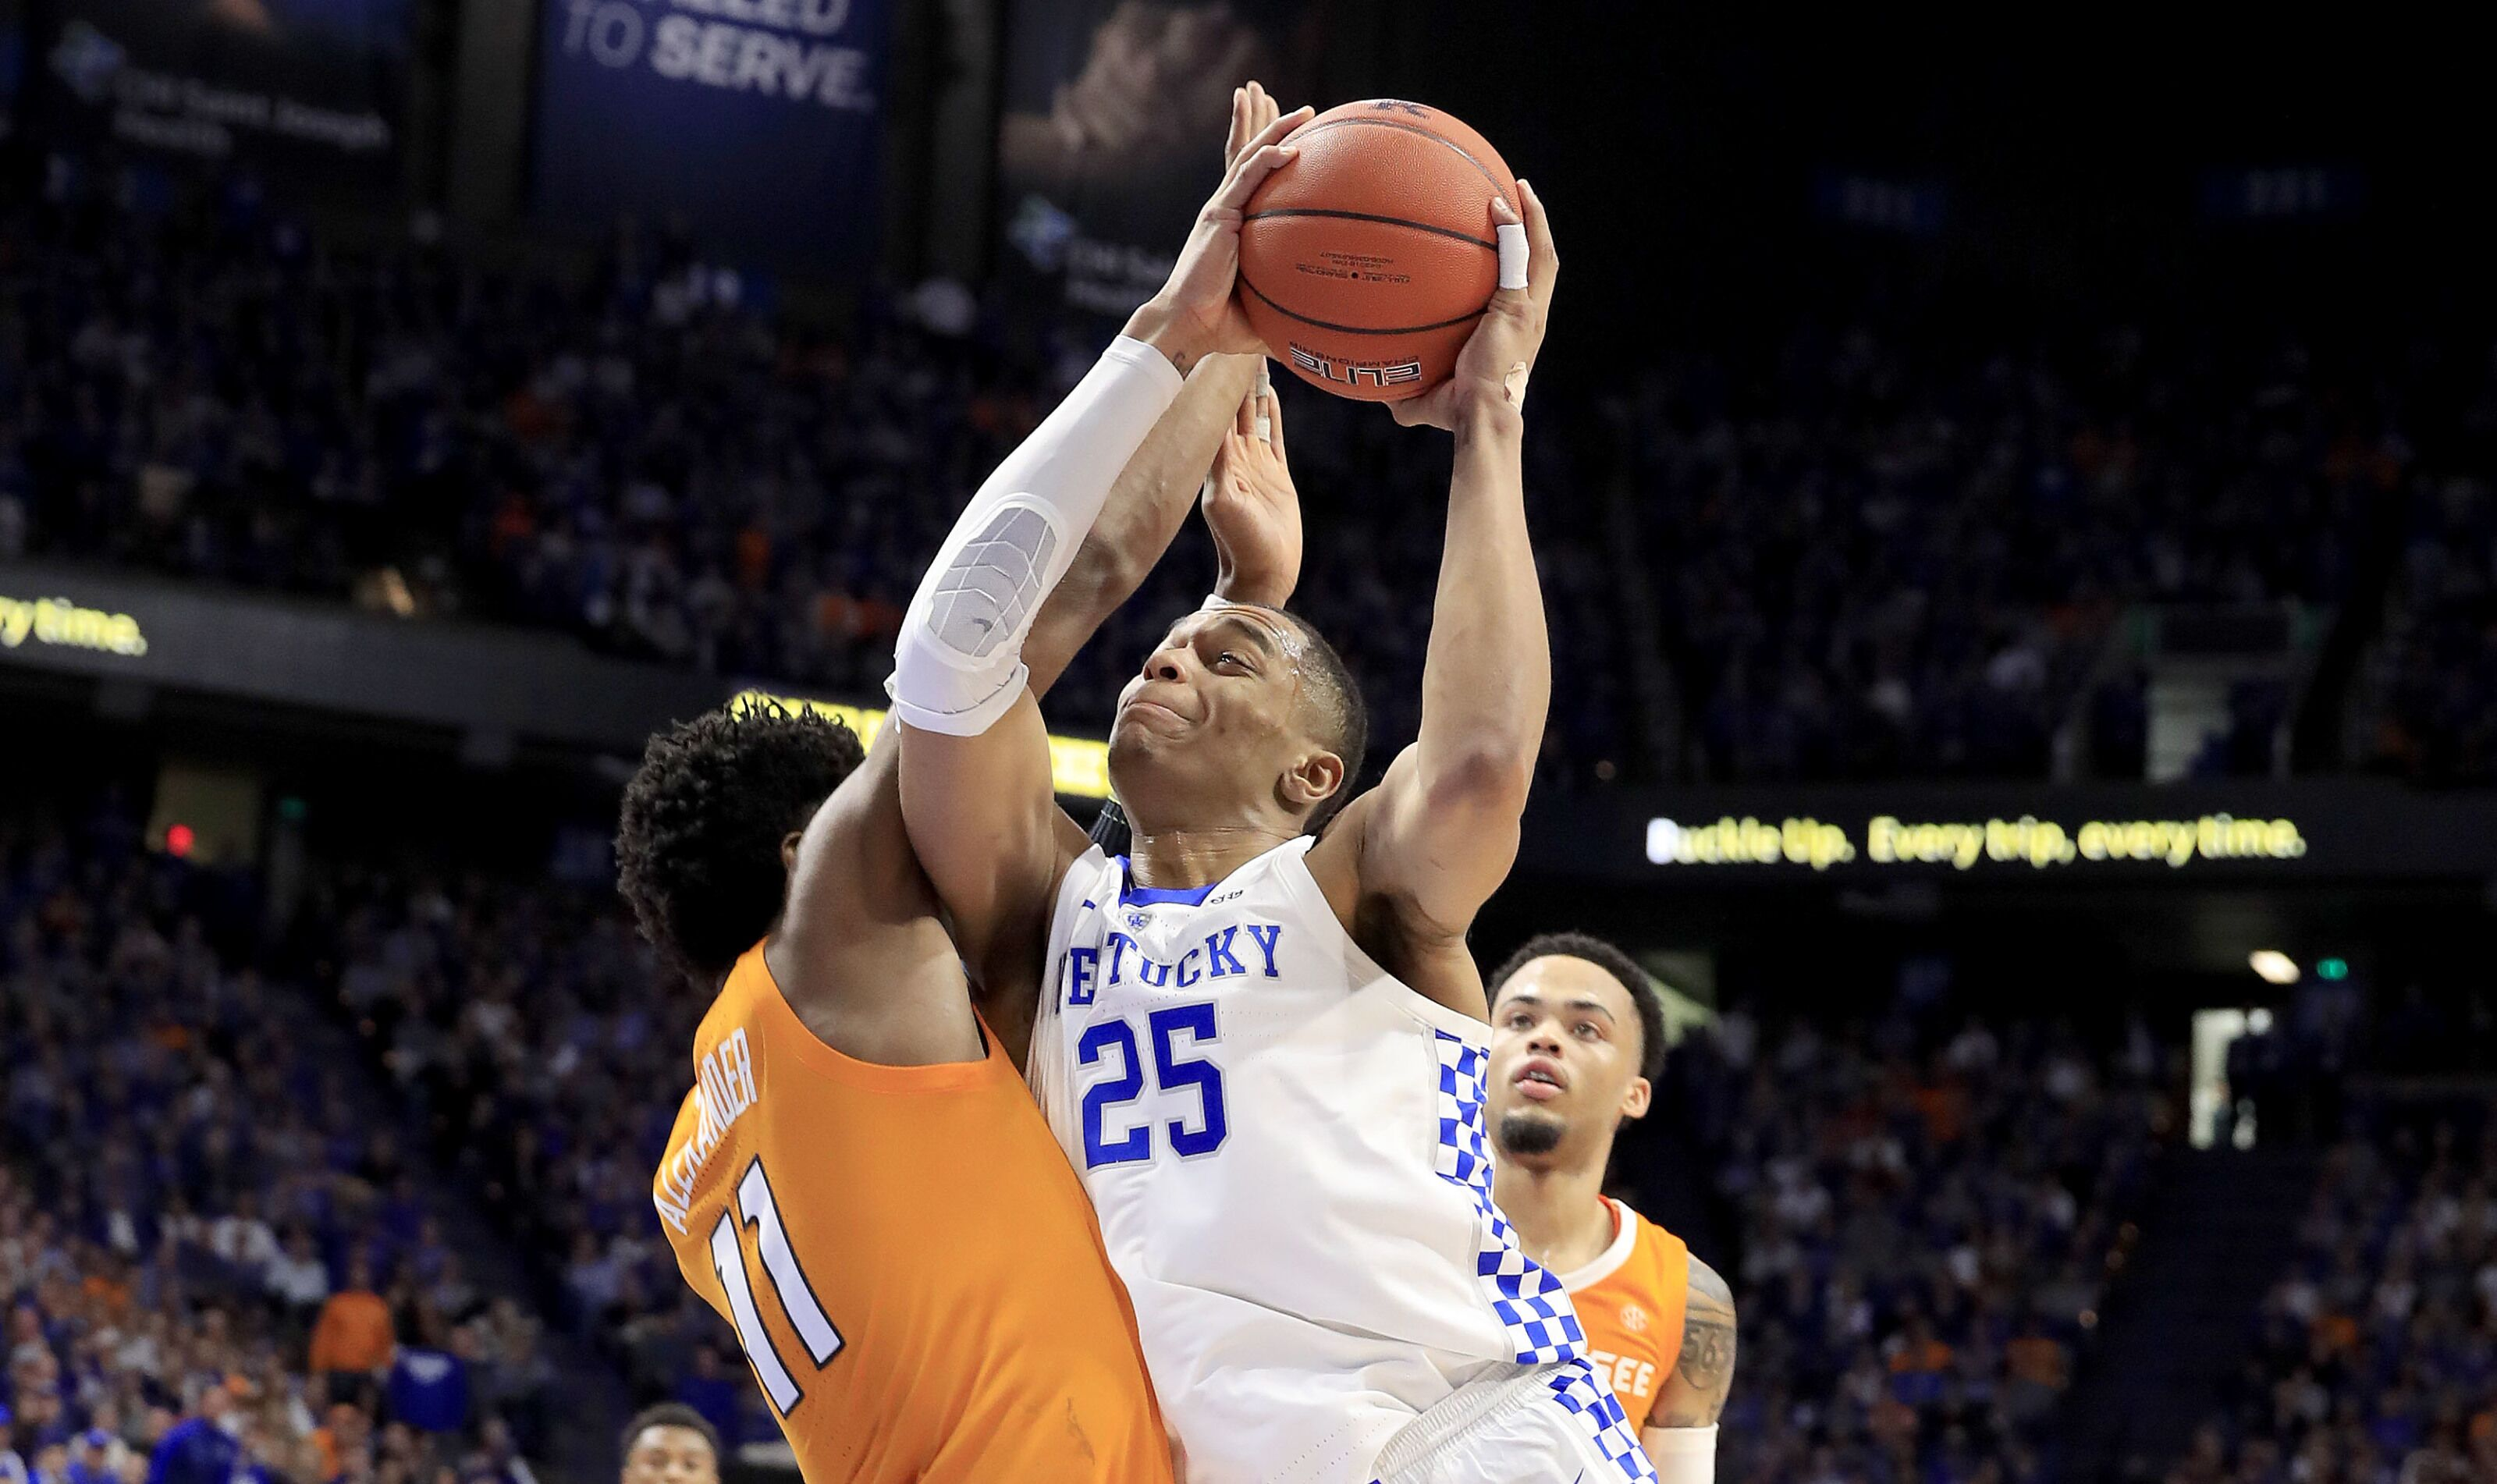 Kentucky Wildcats Basketball 2018 Sec Matchups Revealed: Top Five SEC Basketball Matchups Before March Madness